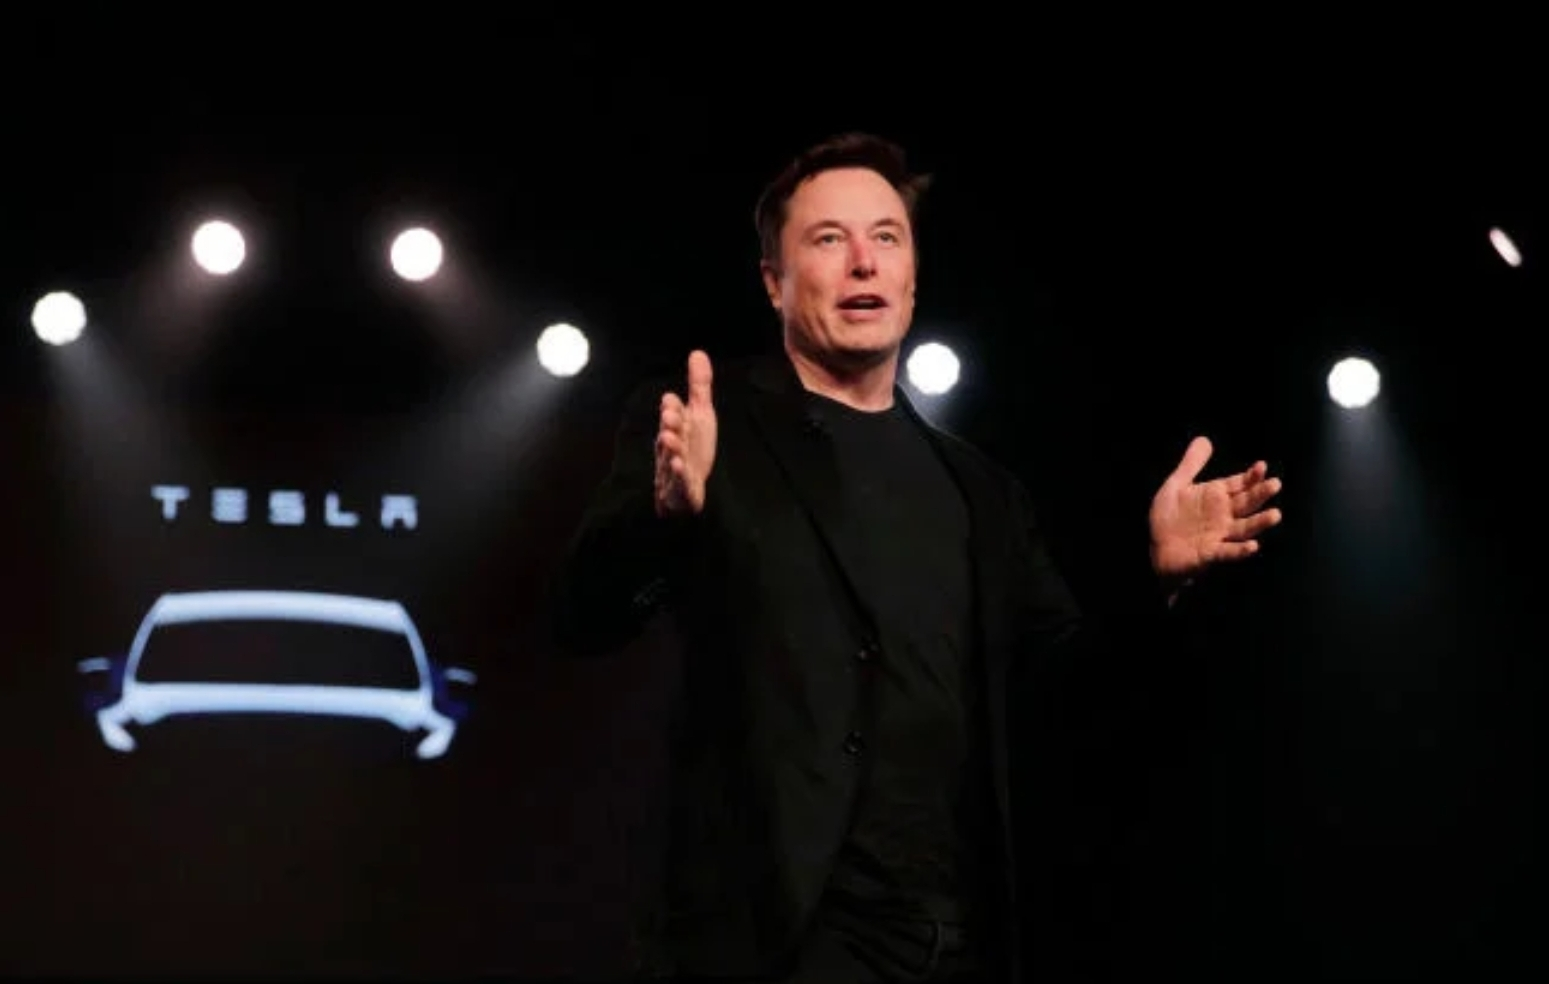 Tesla boasts its own technology in the race for the autonomous car